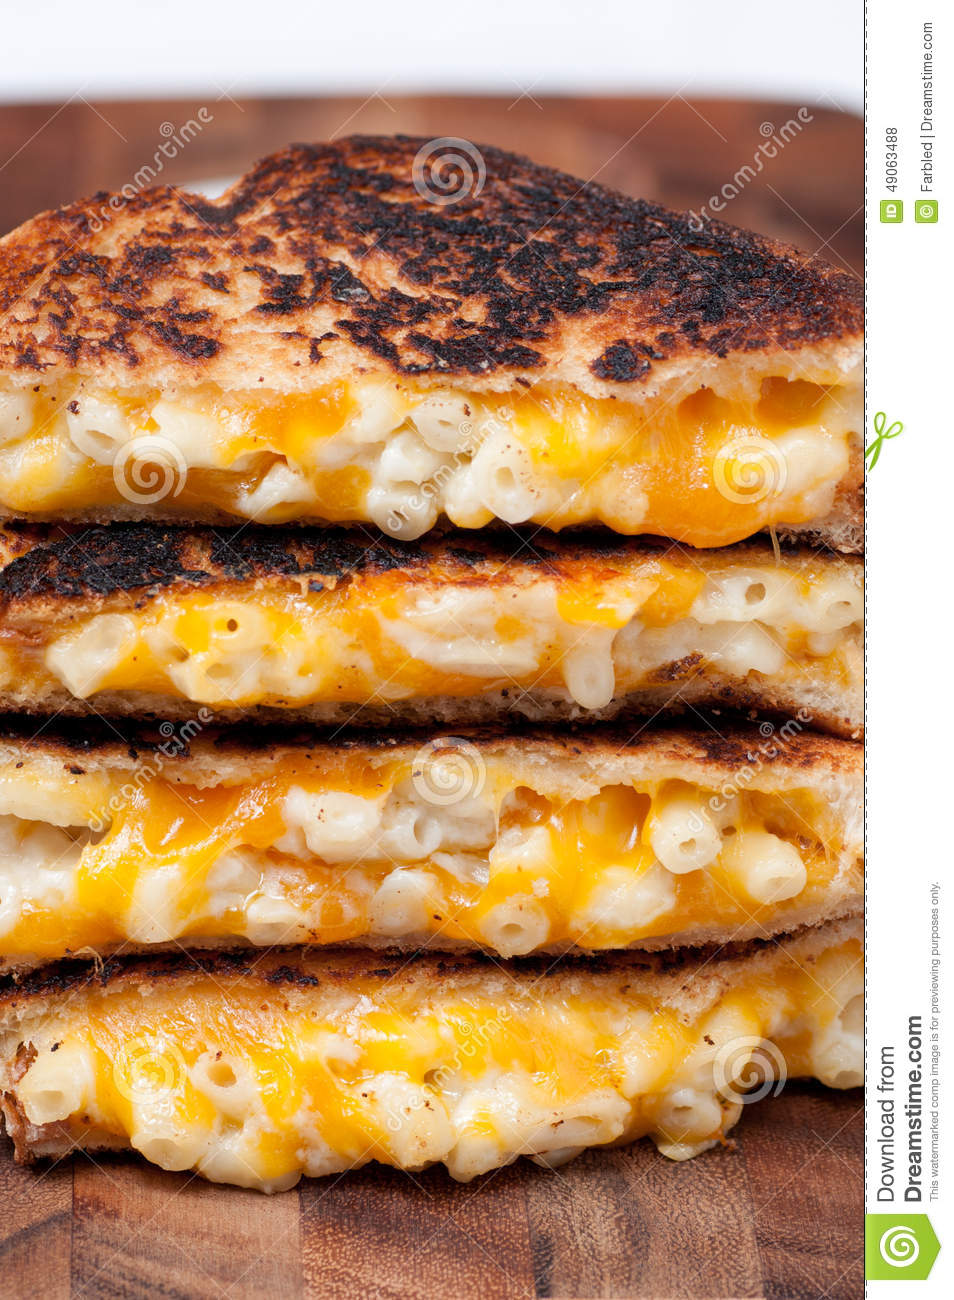 Grilled Macaroni And Cheese Sandwich Stock Photo - Image ...